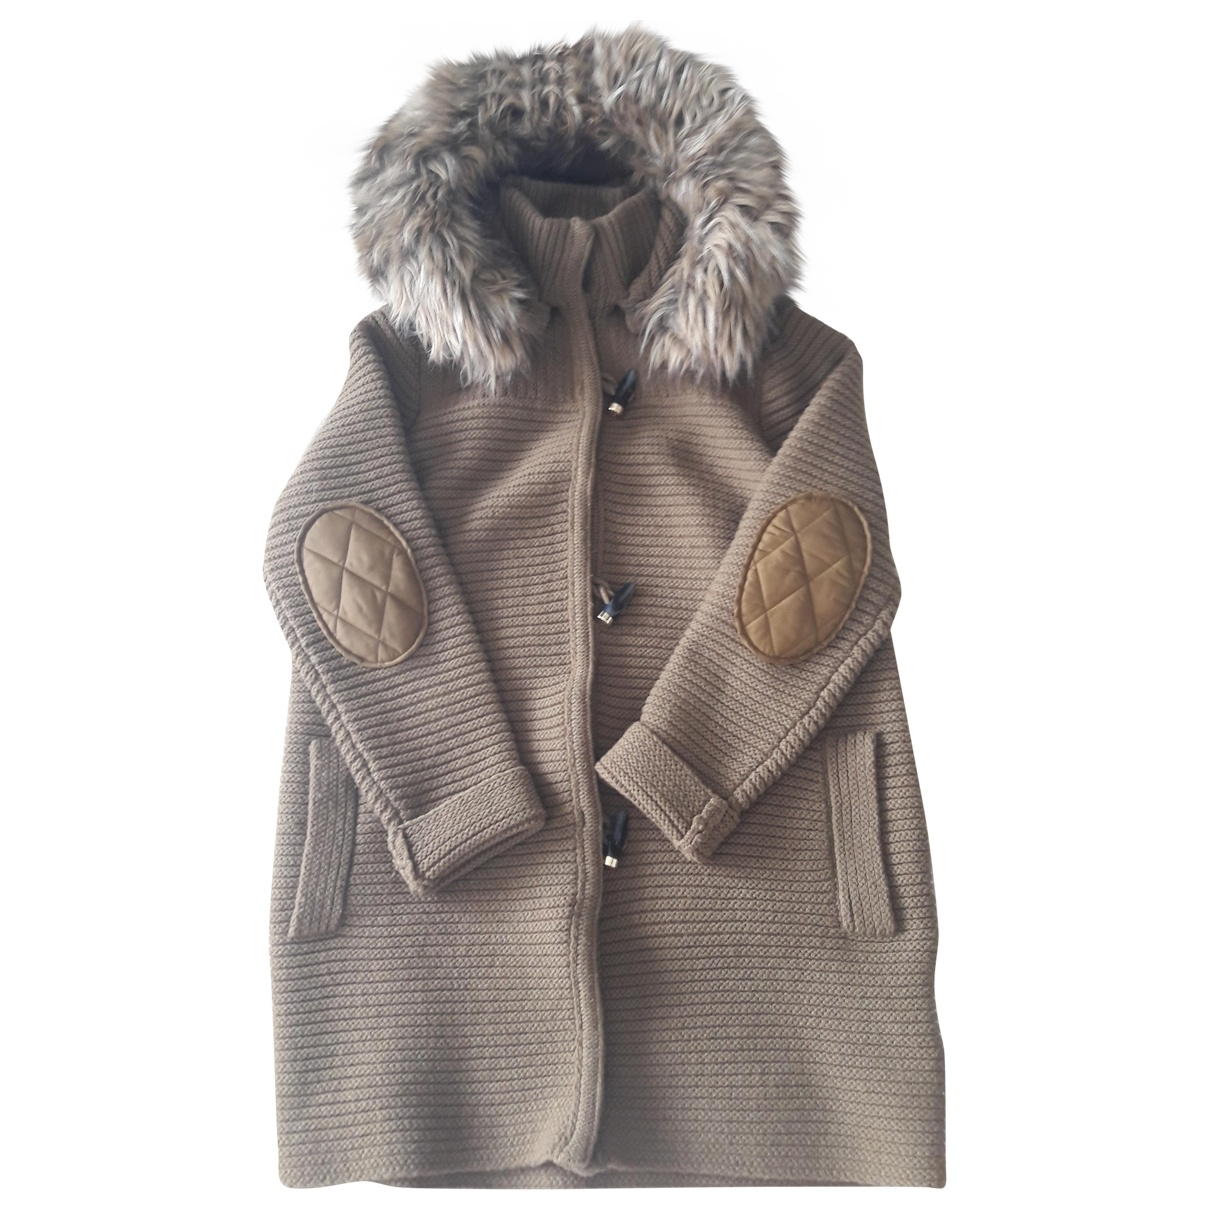 Tommy Hilfiger \N Pullover in  Beige Wolle